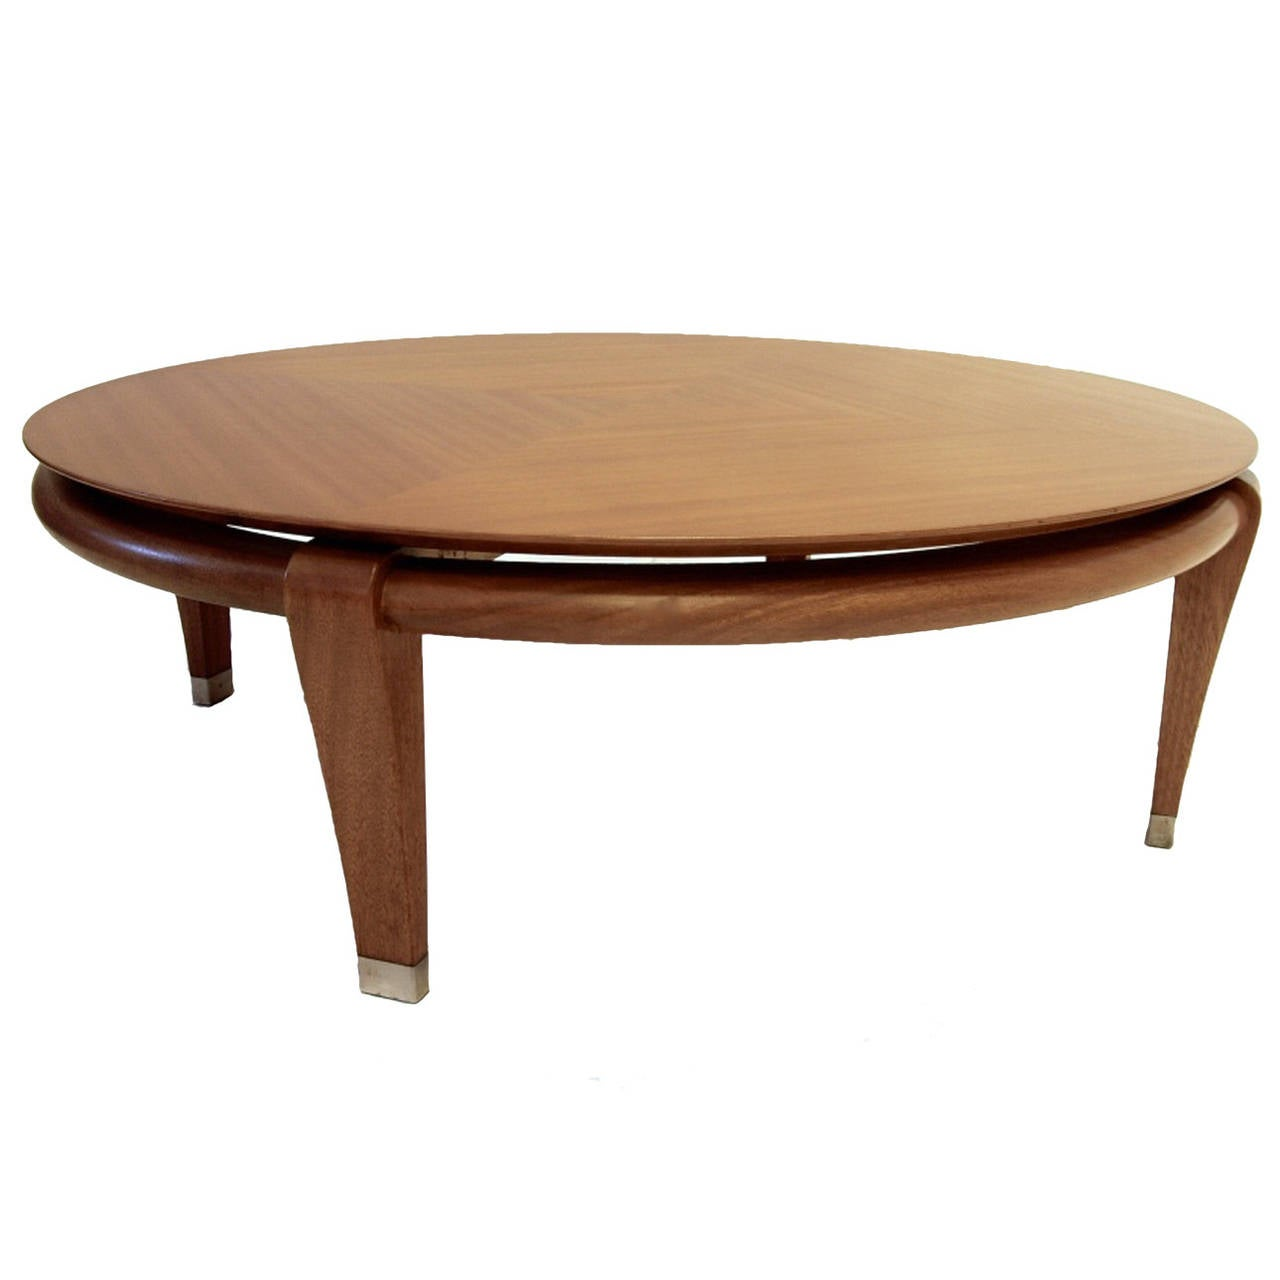 Paul Laszlo For Brown Saltman Round Coffee Table In Mahogany Model 145 For Sale At 1stdibs